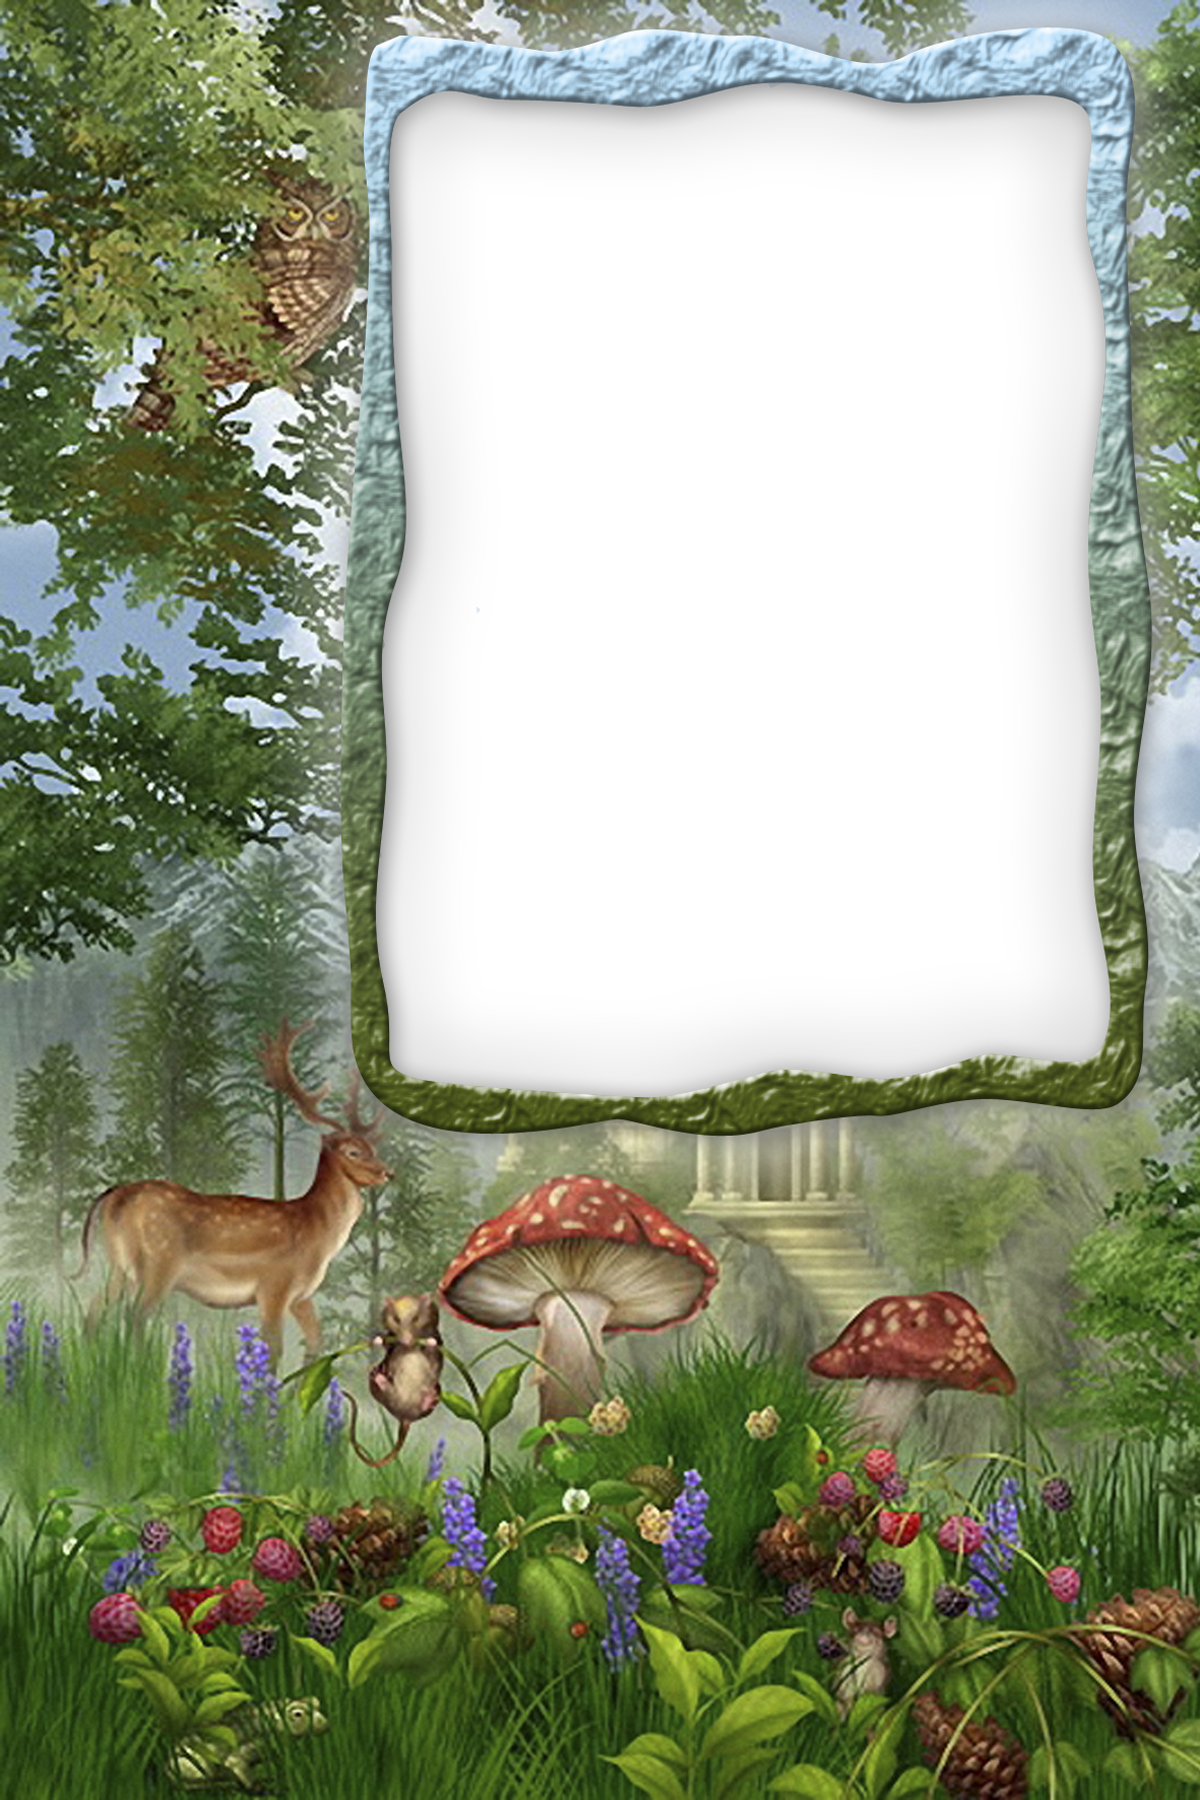 Transparent Forest Frame Clip Art Borders Flower Frame Sheet Music Art